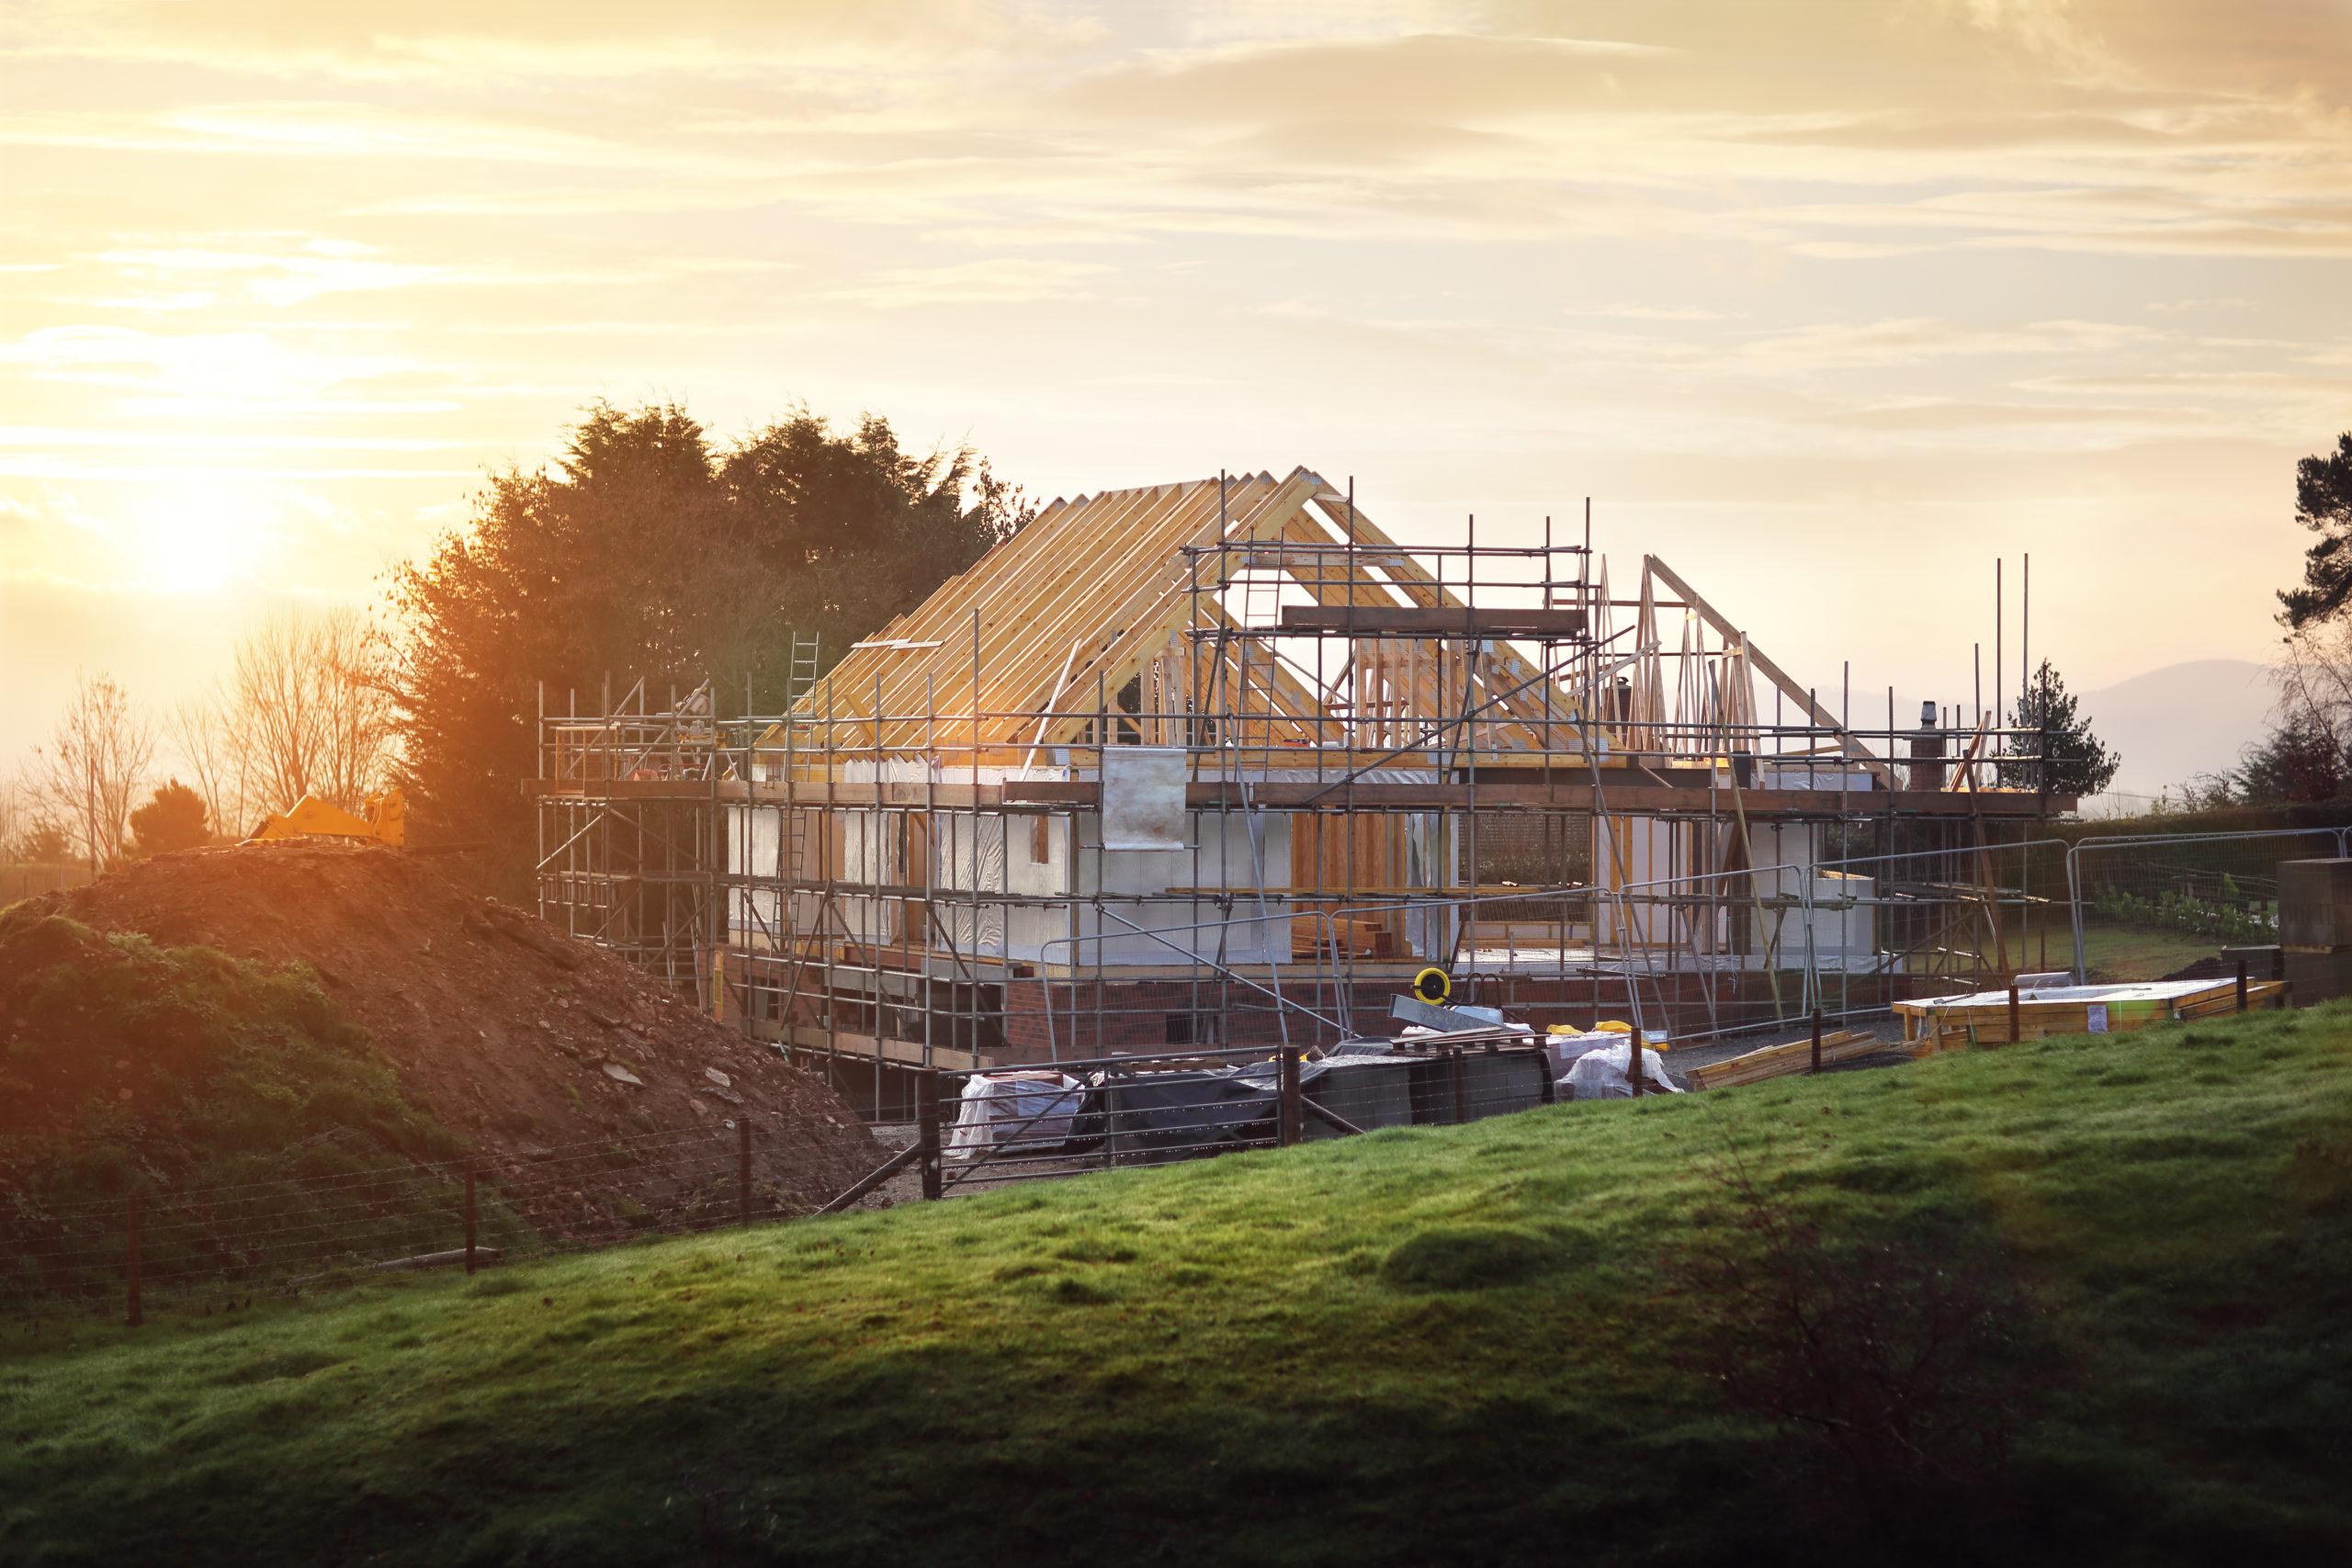 Why You Need Title Insurance for a Newly Constructed Home